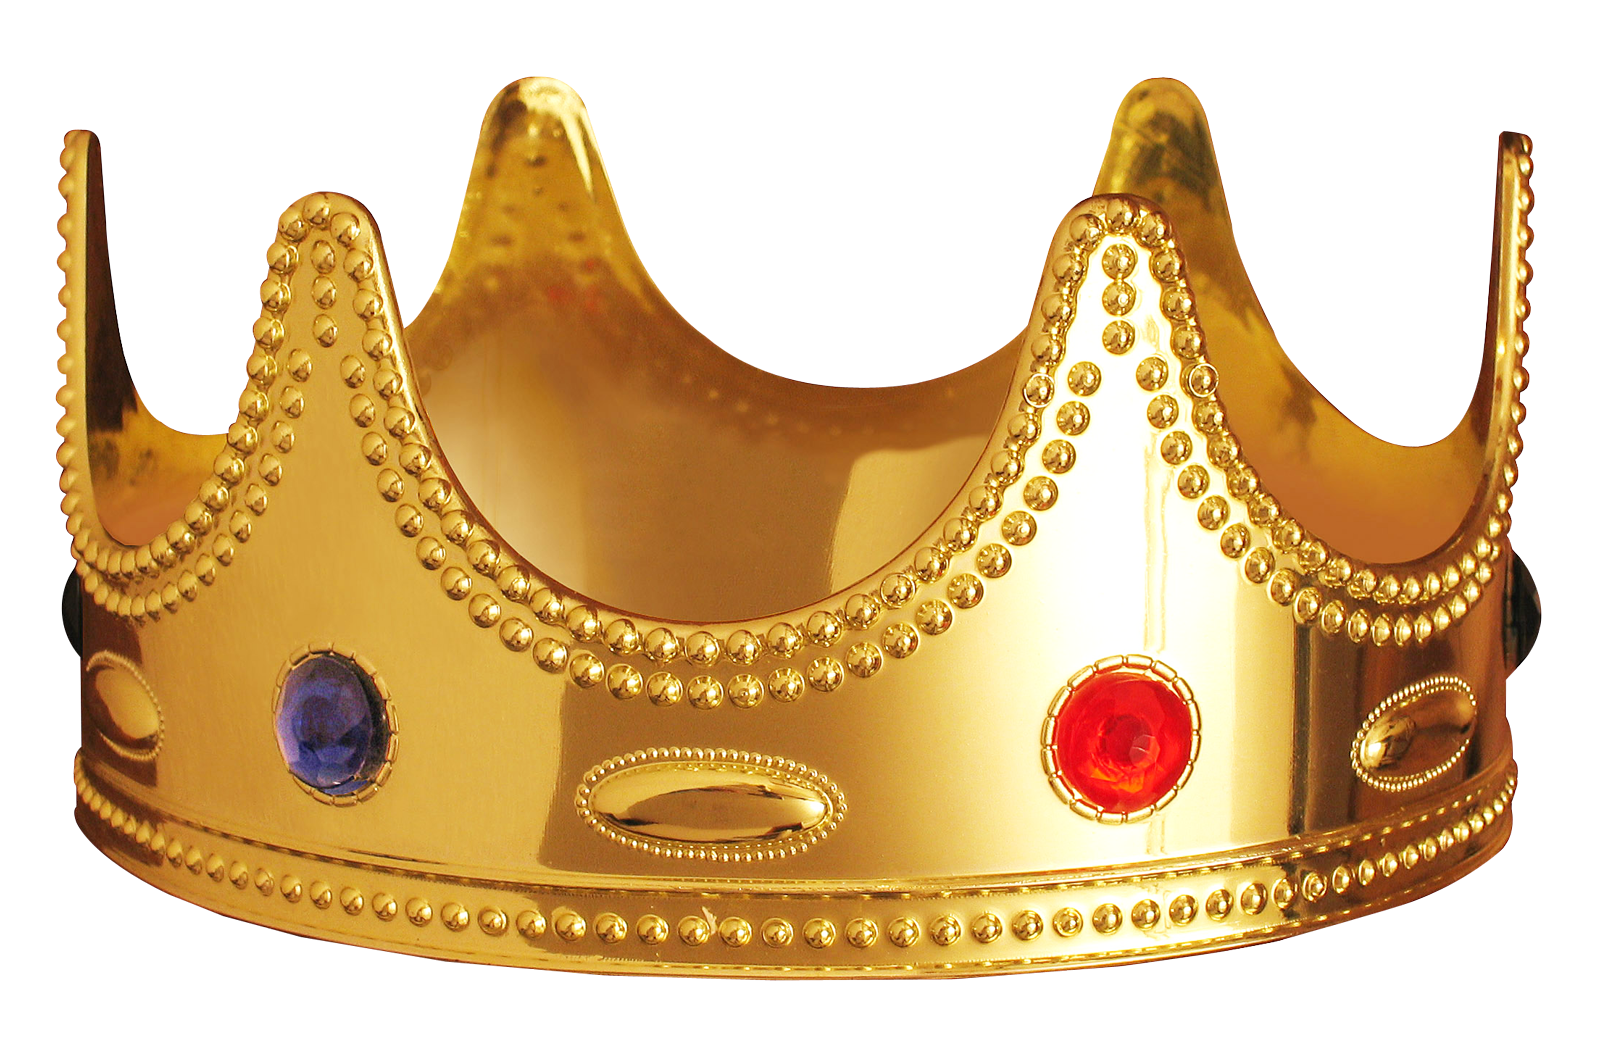 Crown Transparent Image Pix Crown Png Kids Party Themes Red Crown